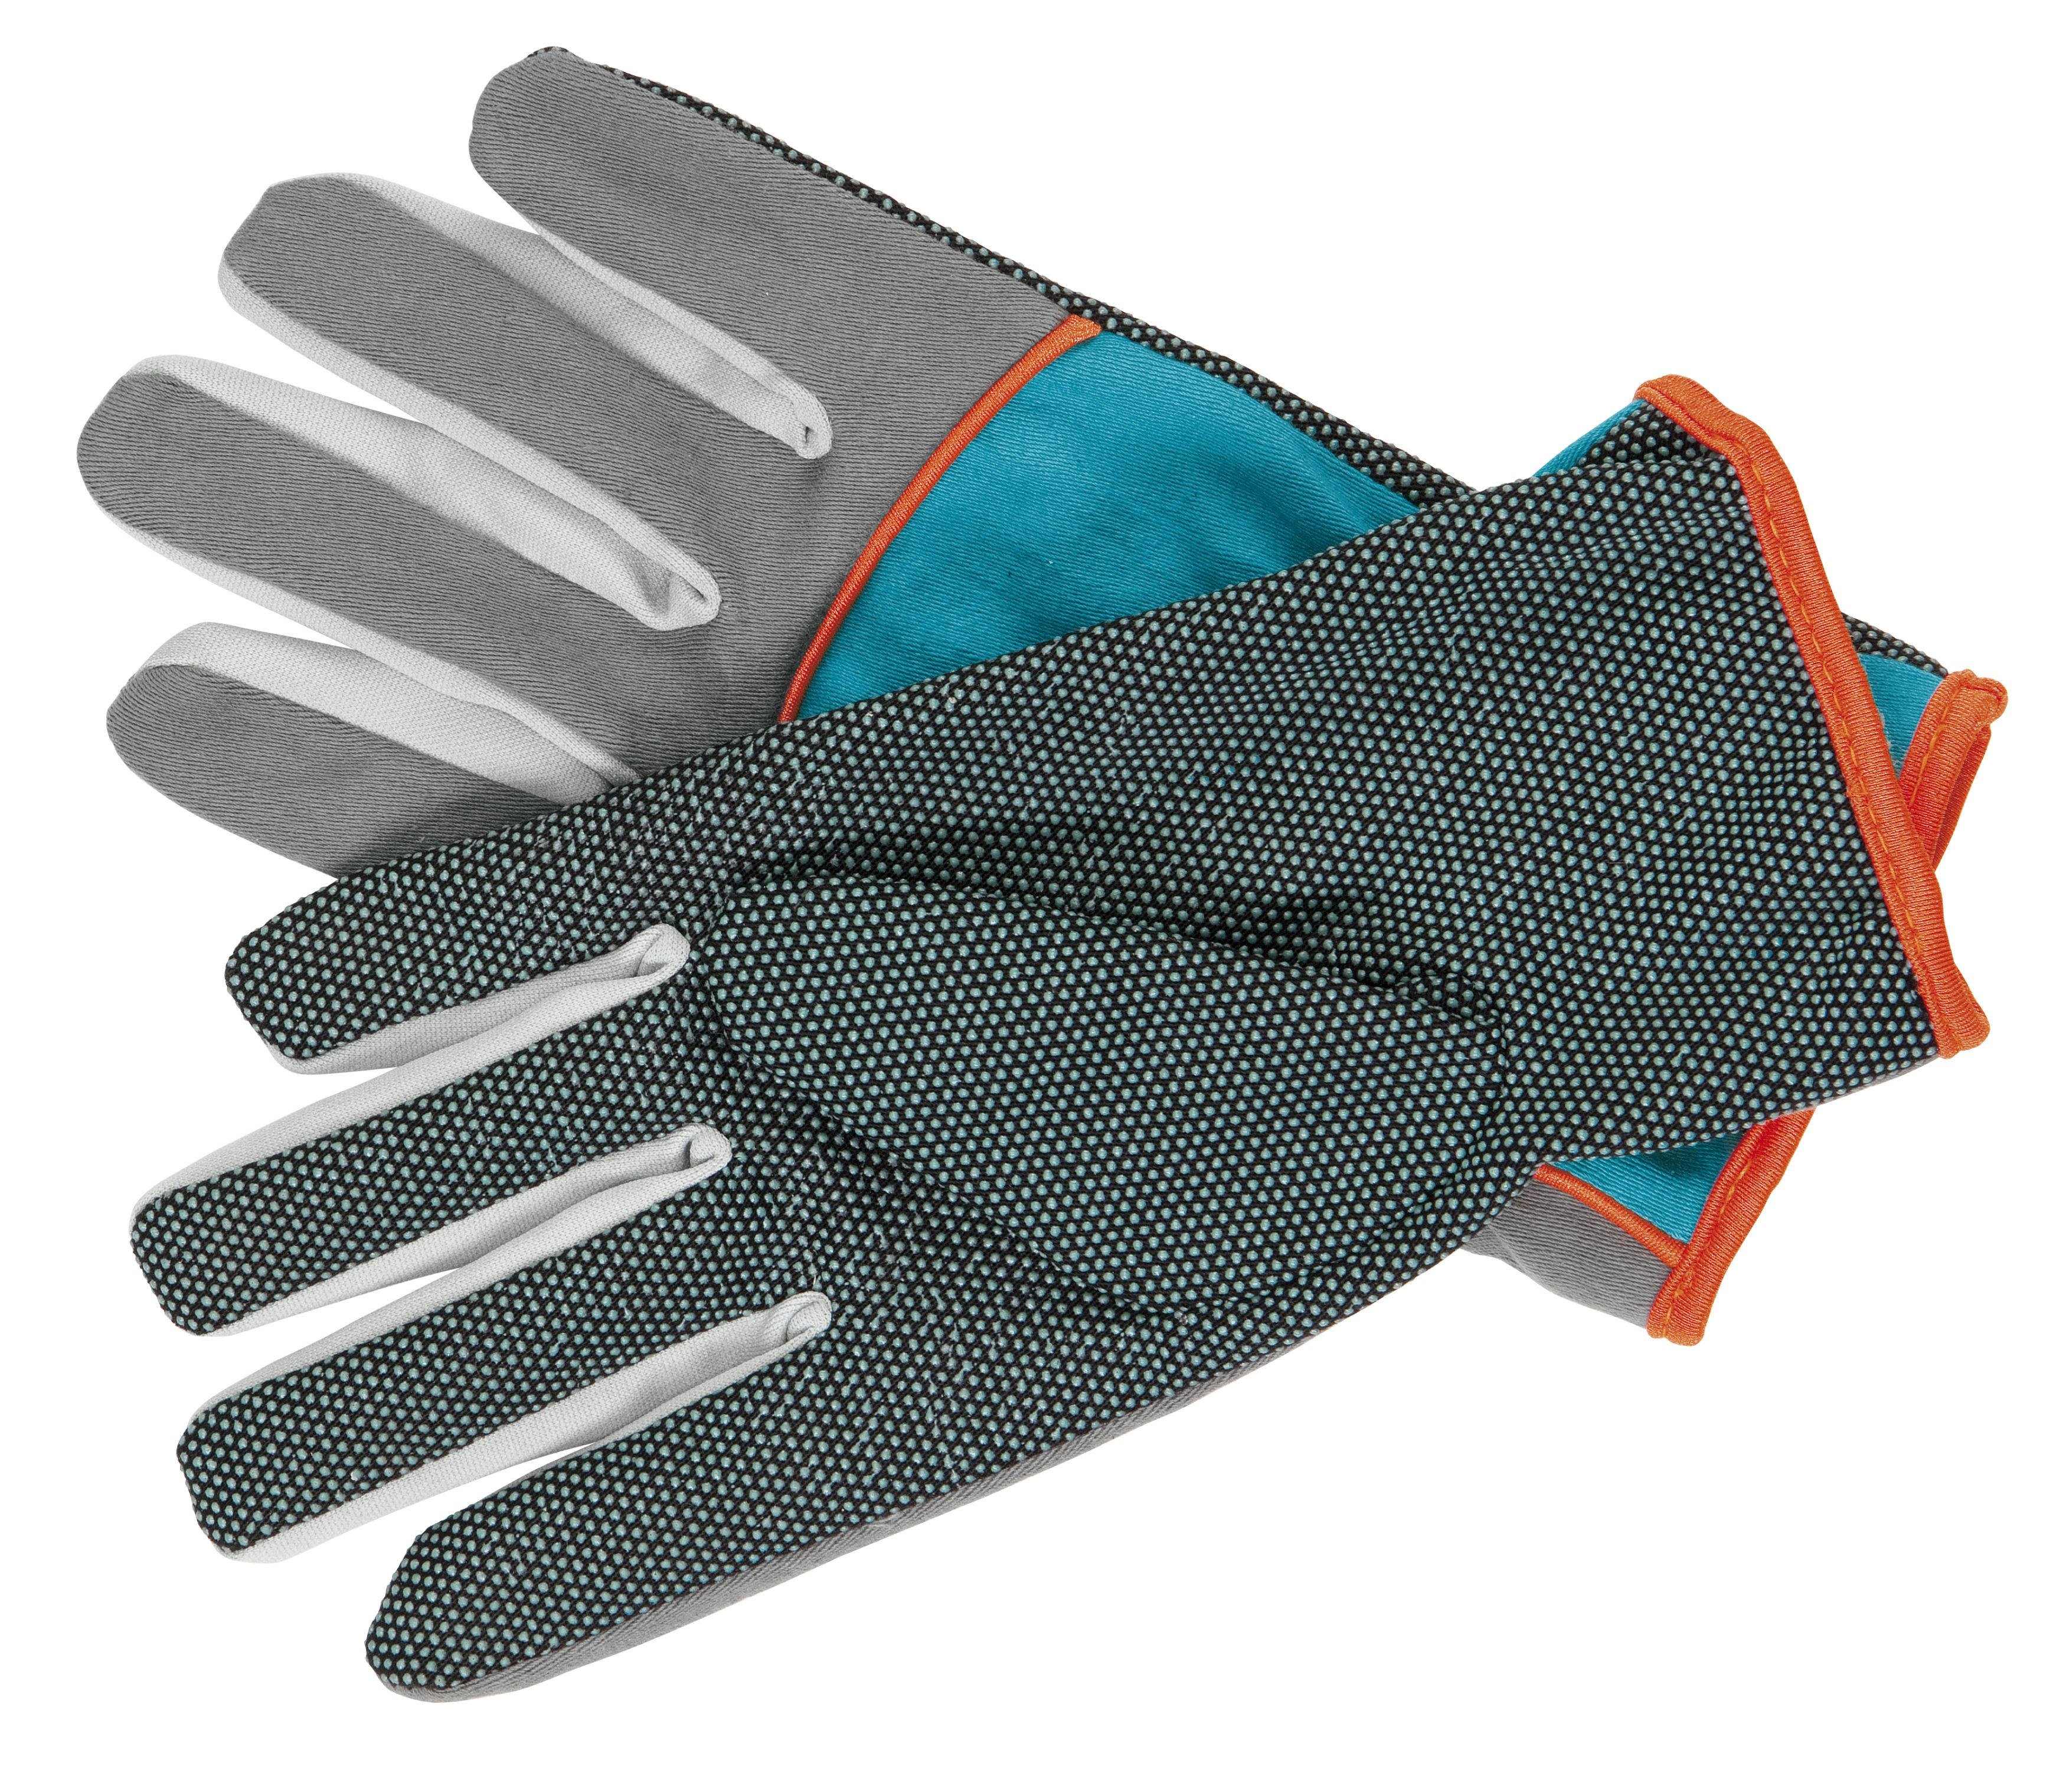 GARDENA GARDEN GLOVES LARGE 207